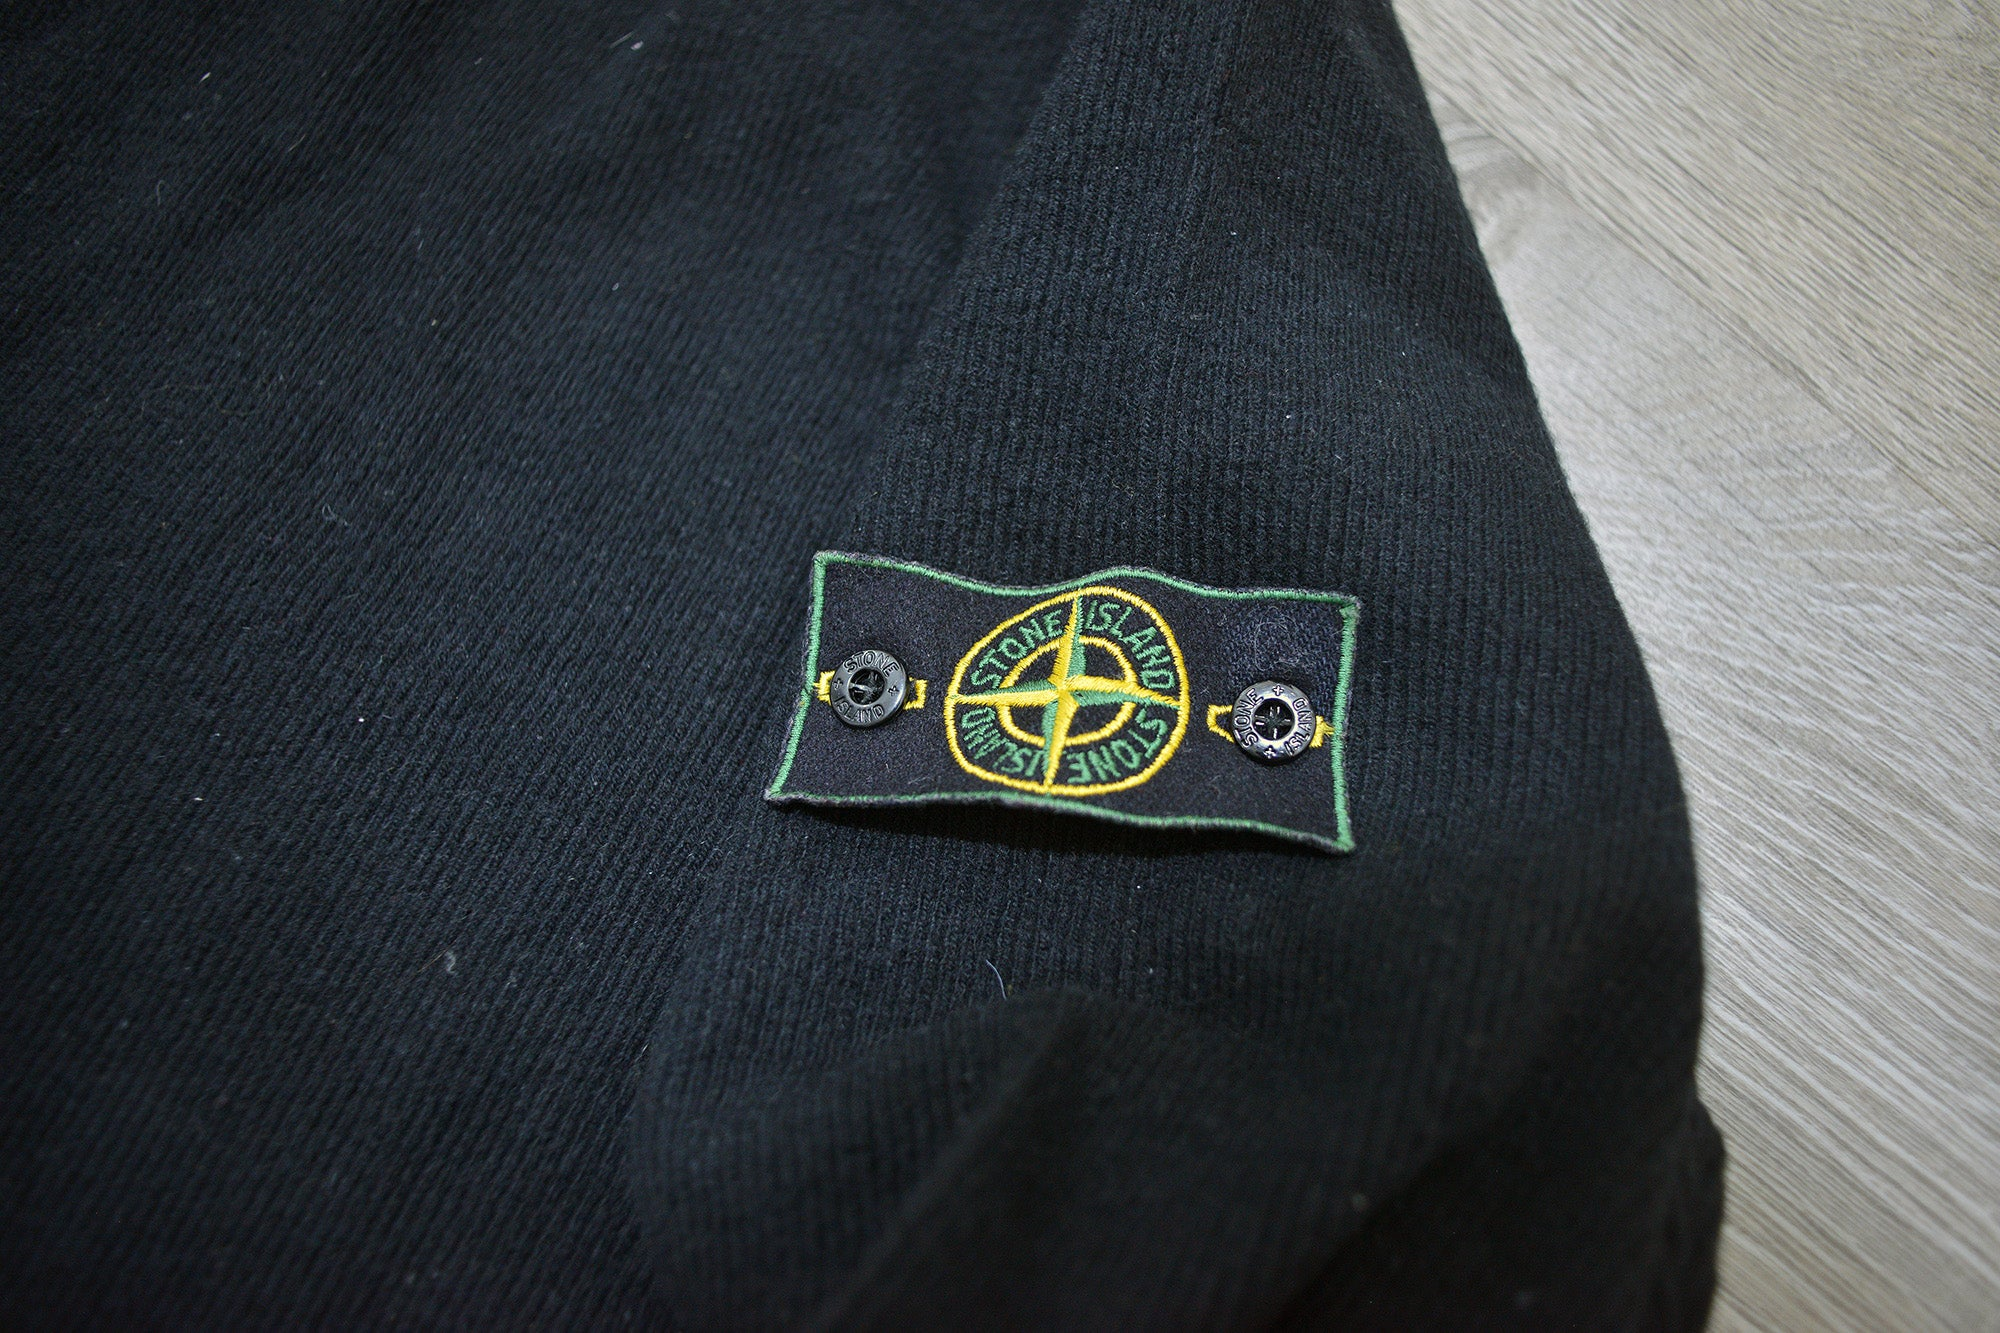 Vintage Stone Island Black Knit Lana Wool Jumper/Sweater